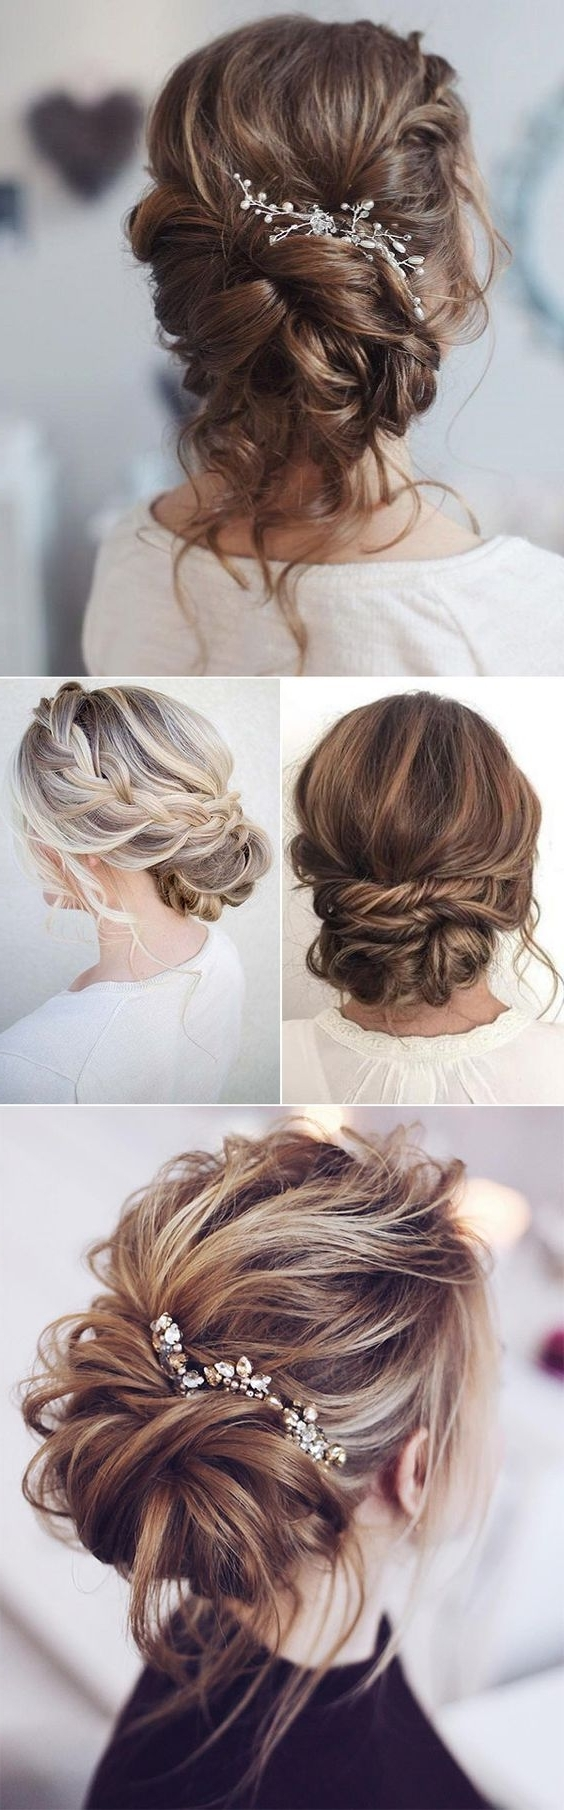 778 Best Wedding Hairstyles Images On Pinterest (View 5 of 15)